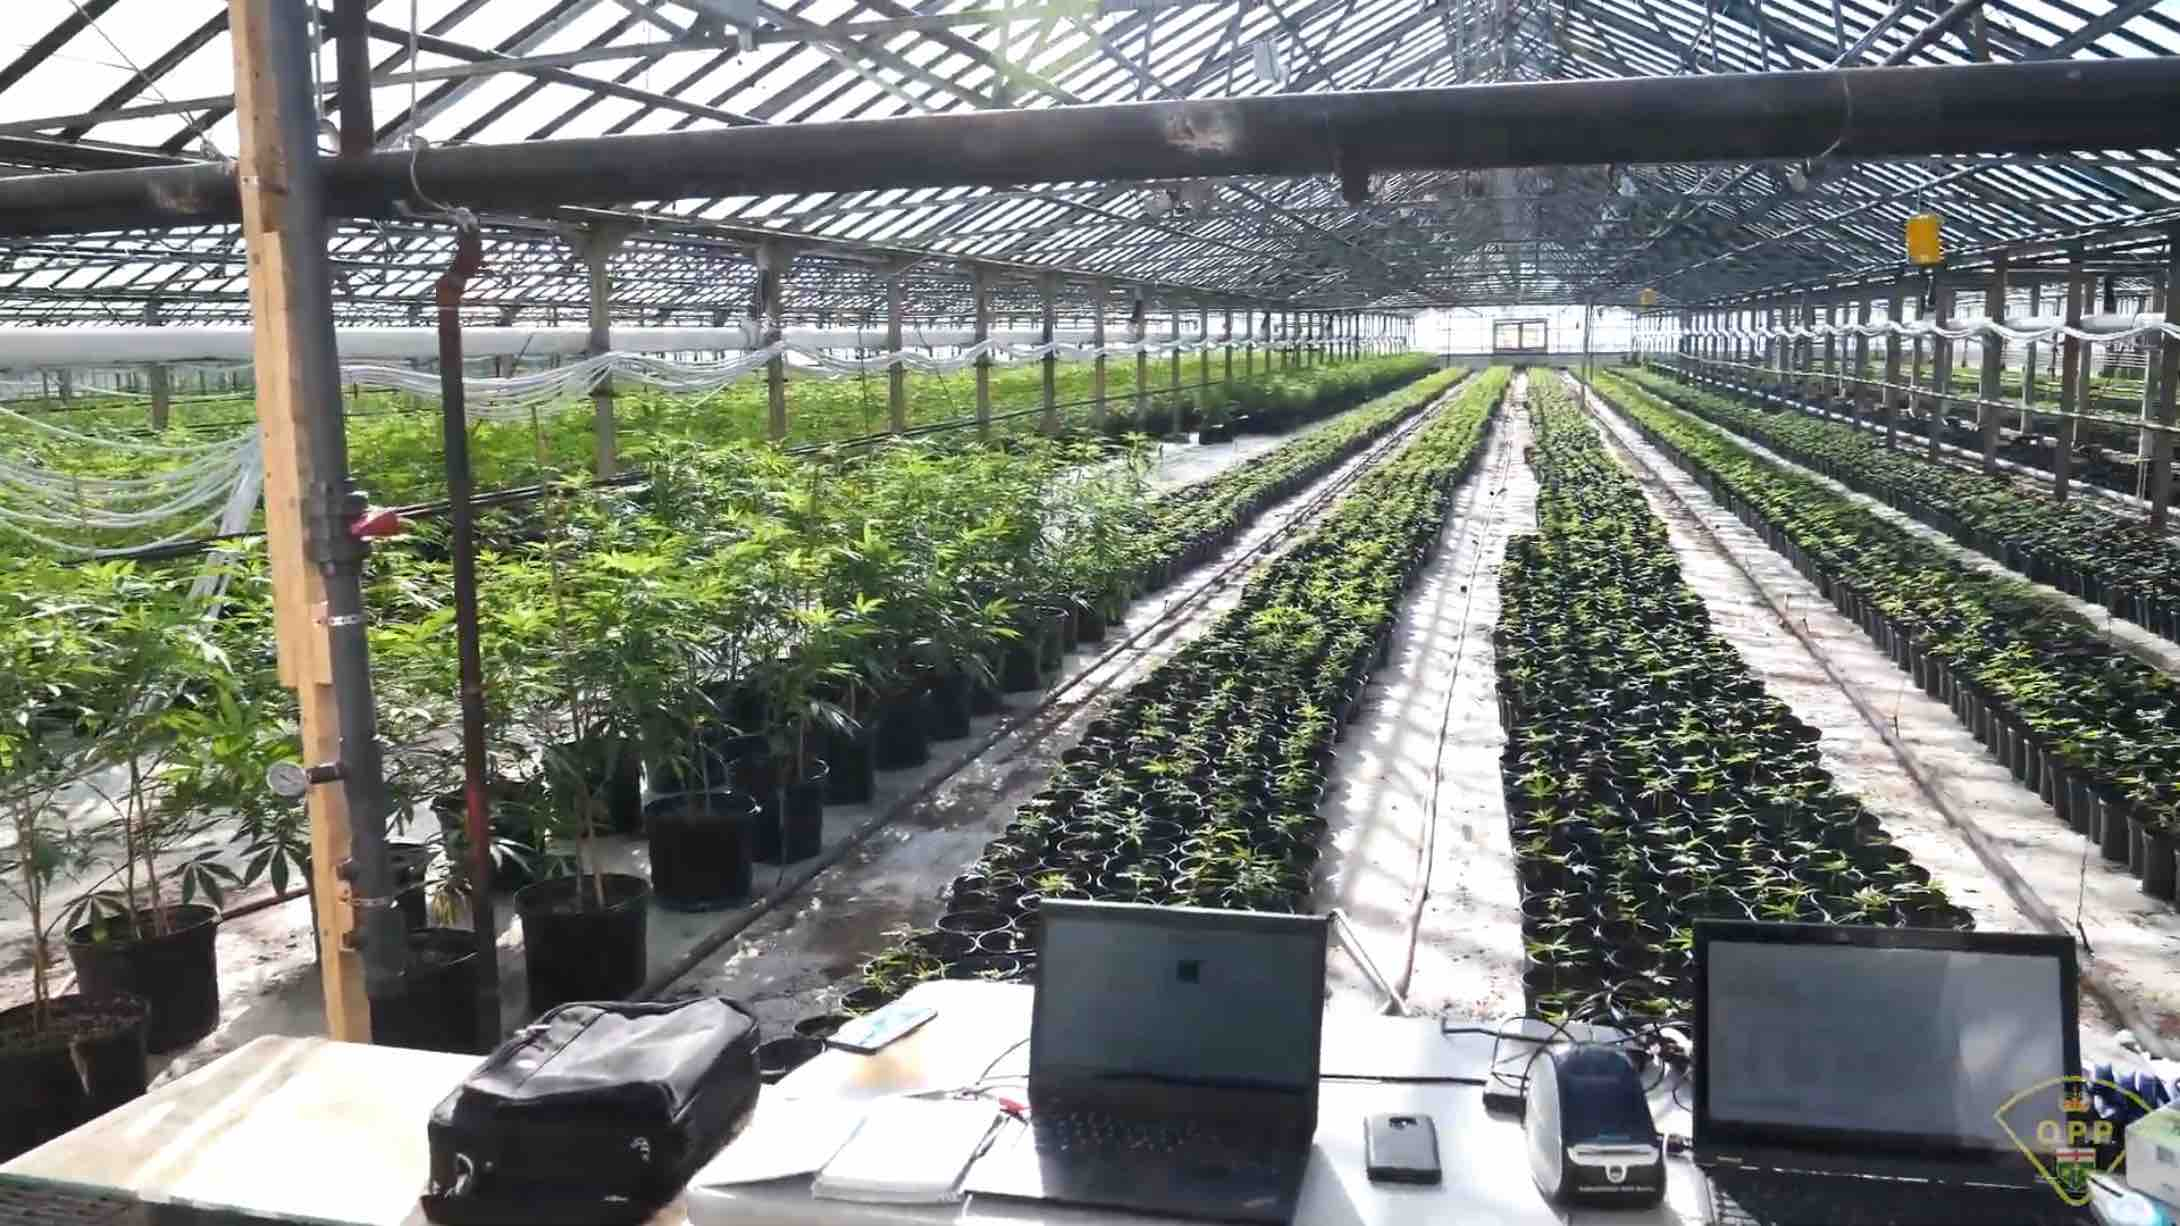 Ontario police say they have seized over 180,000 cannabis plants from large scale, illicit grows over past two years